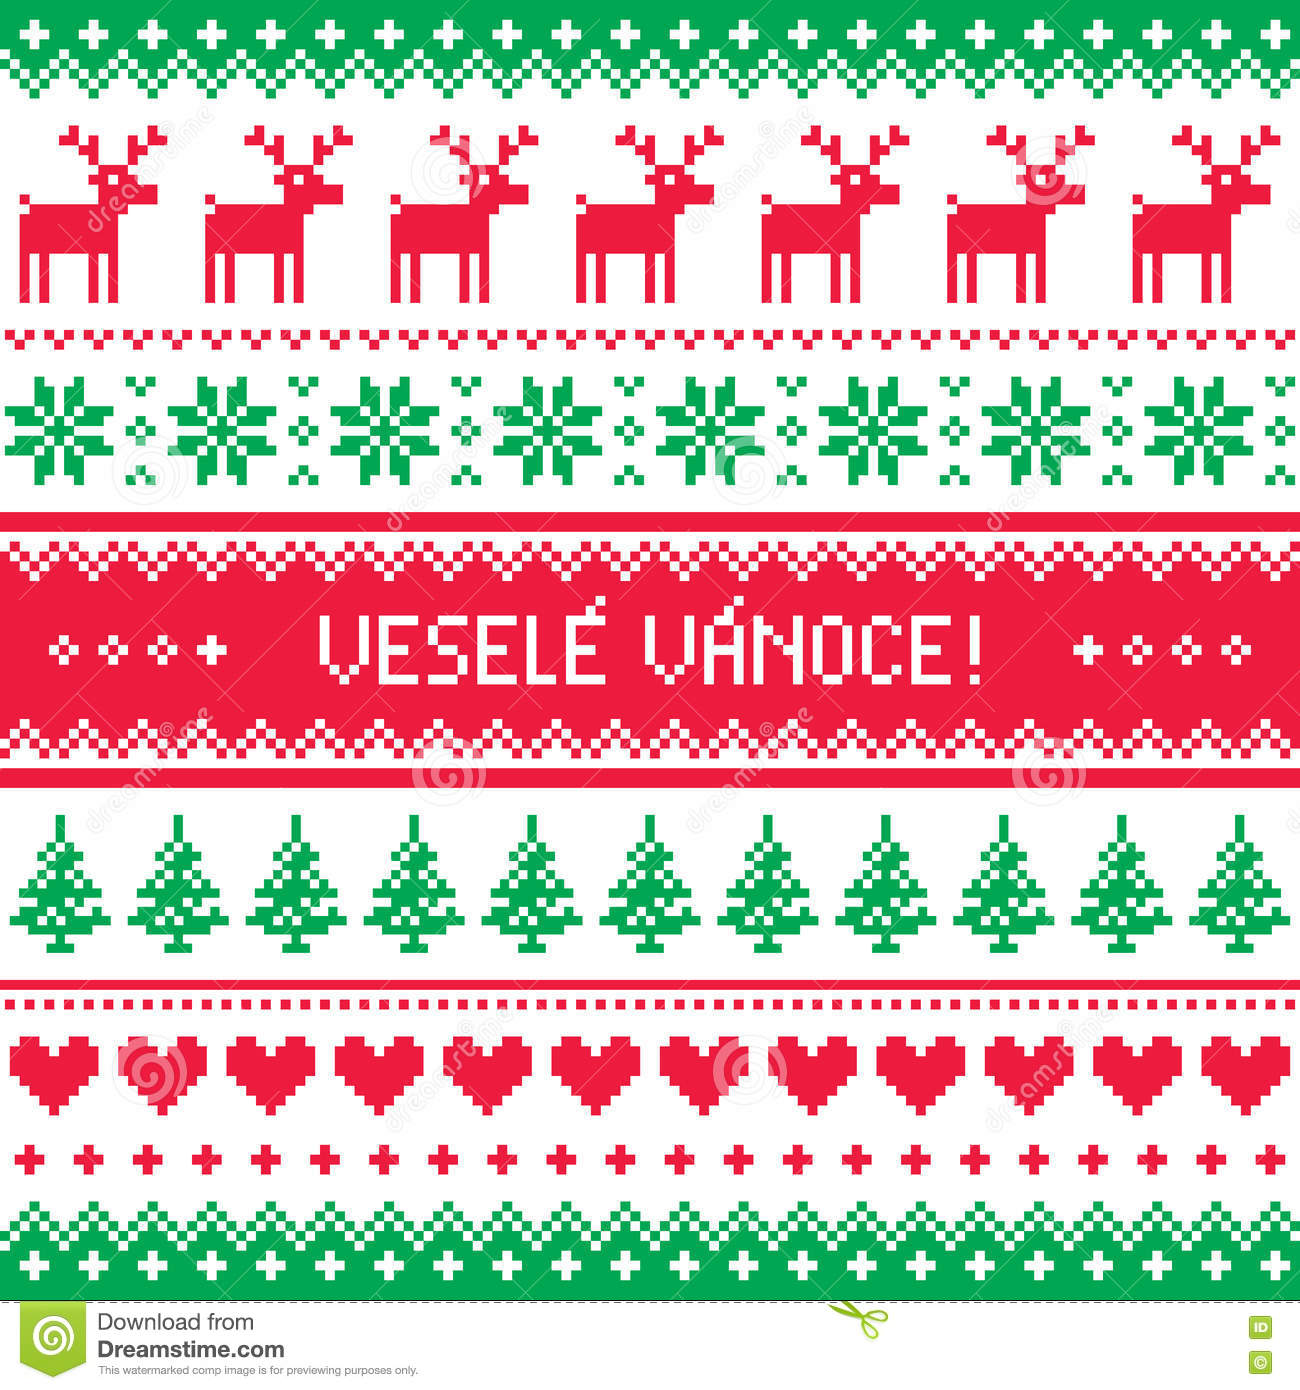 Vesele Vanoce Greetings Card Merry Christmas In Czech Stock